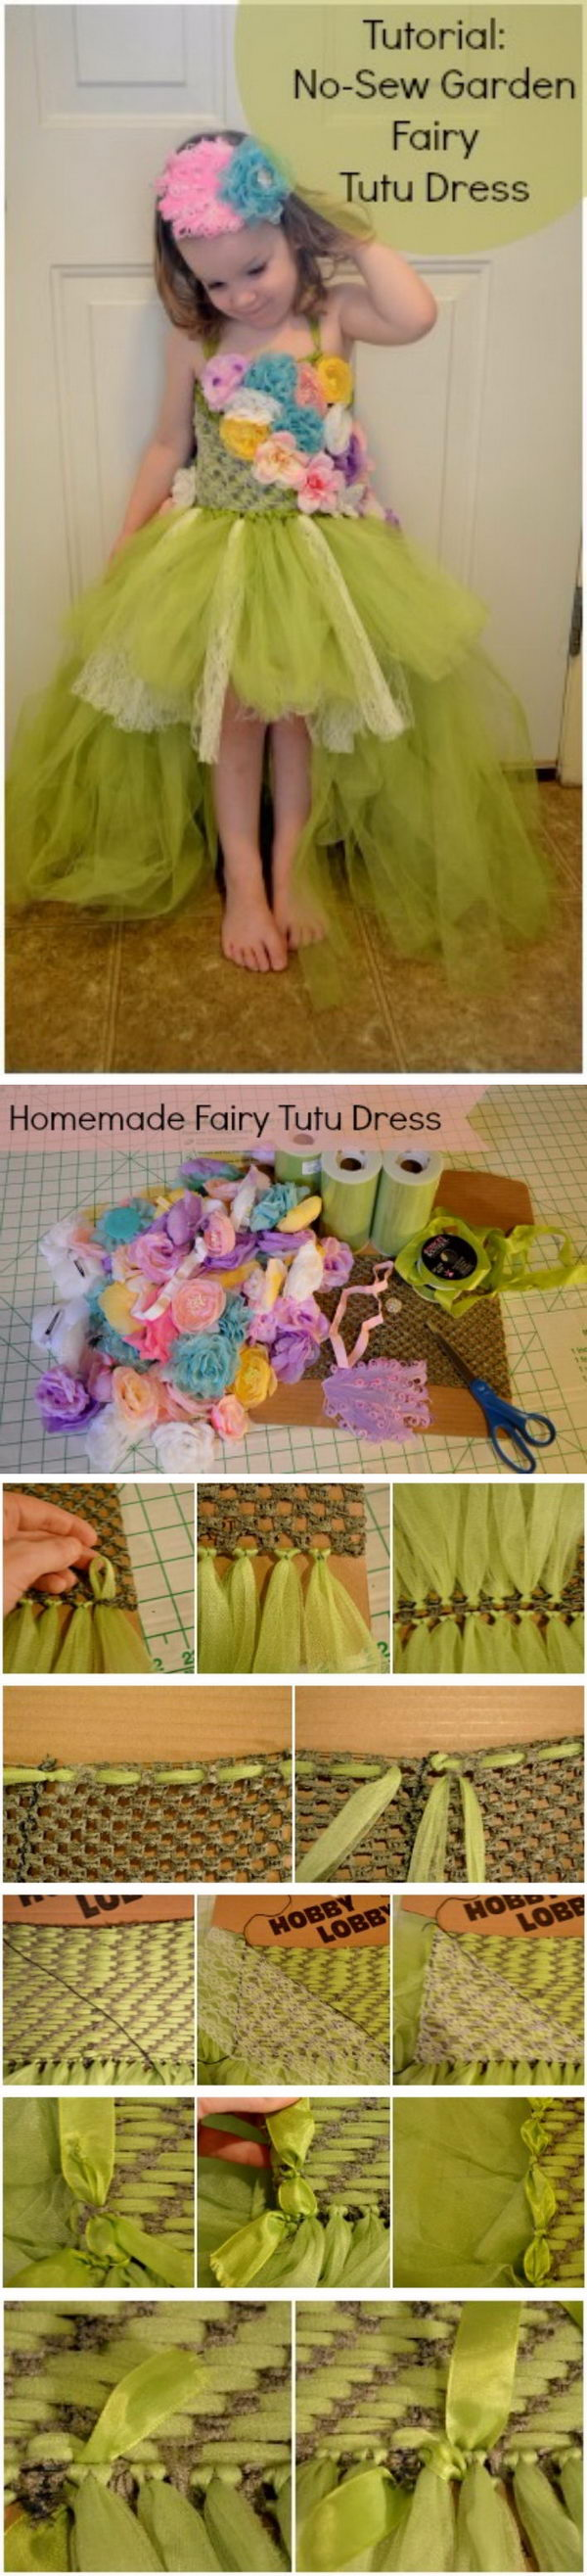 No Sew Fairy Tutu Dress.